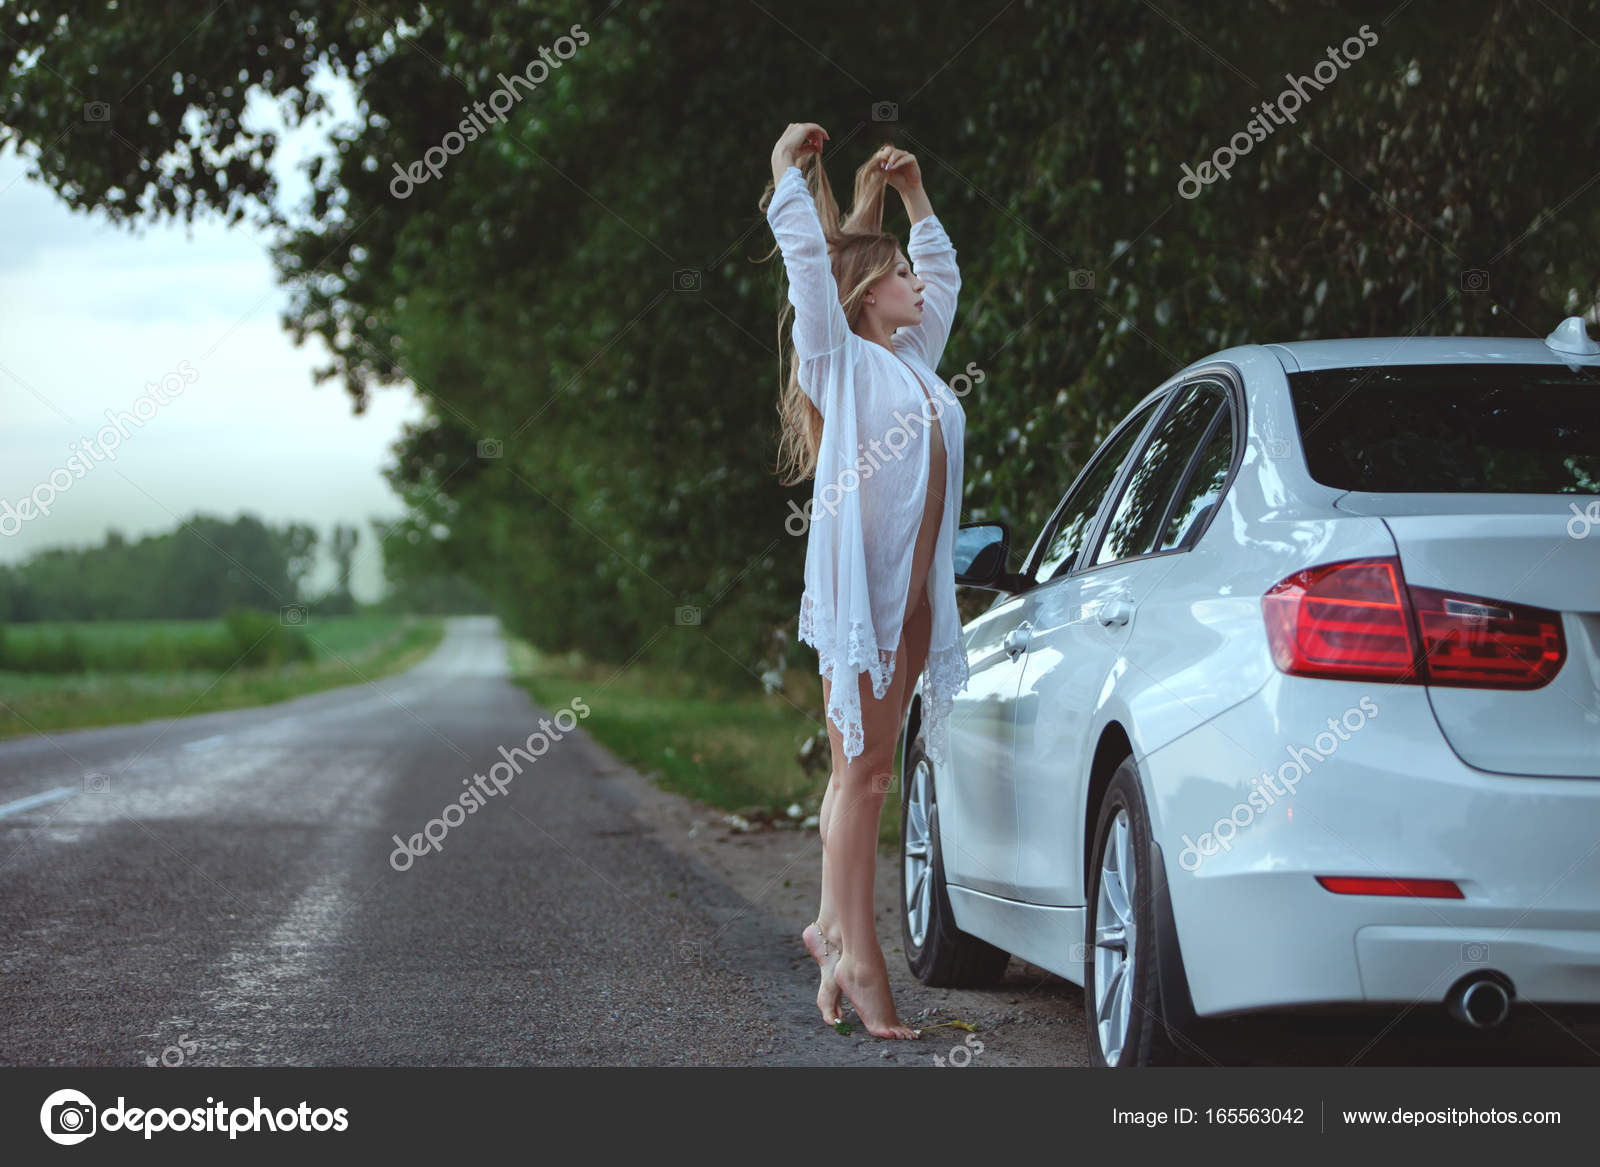 Can help erotic car woman have hit